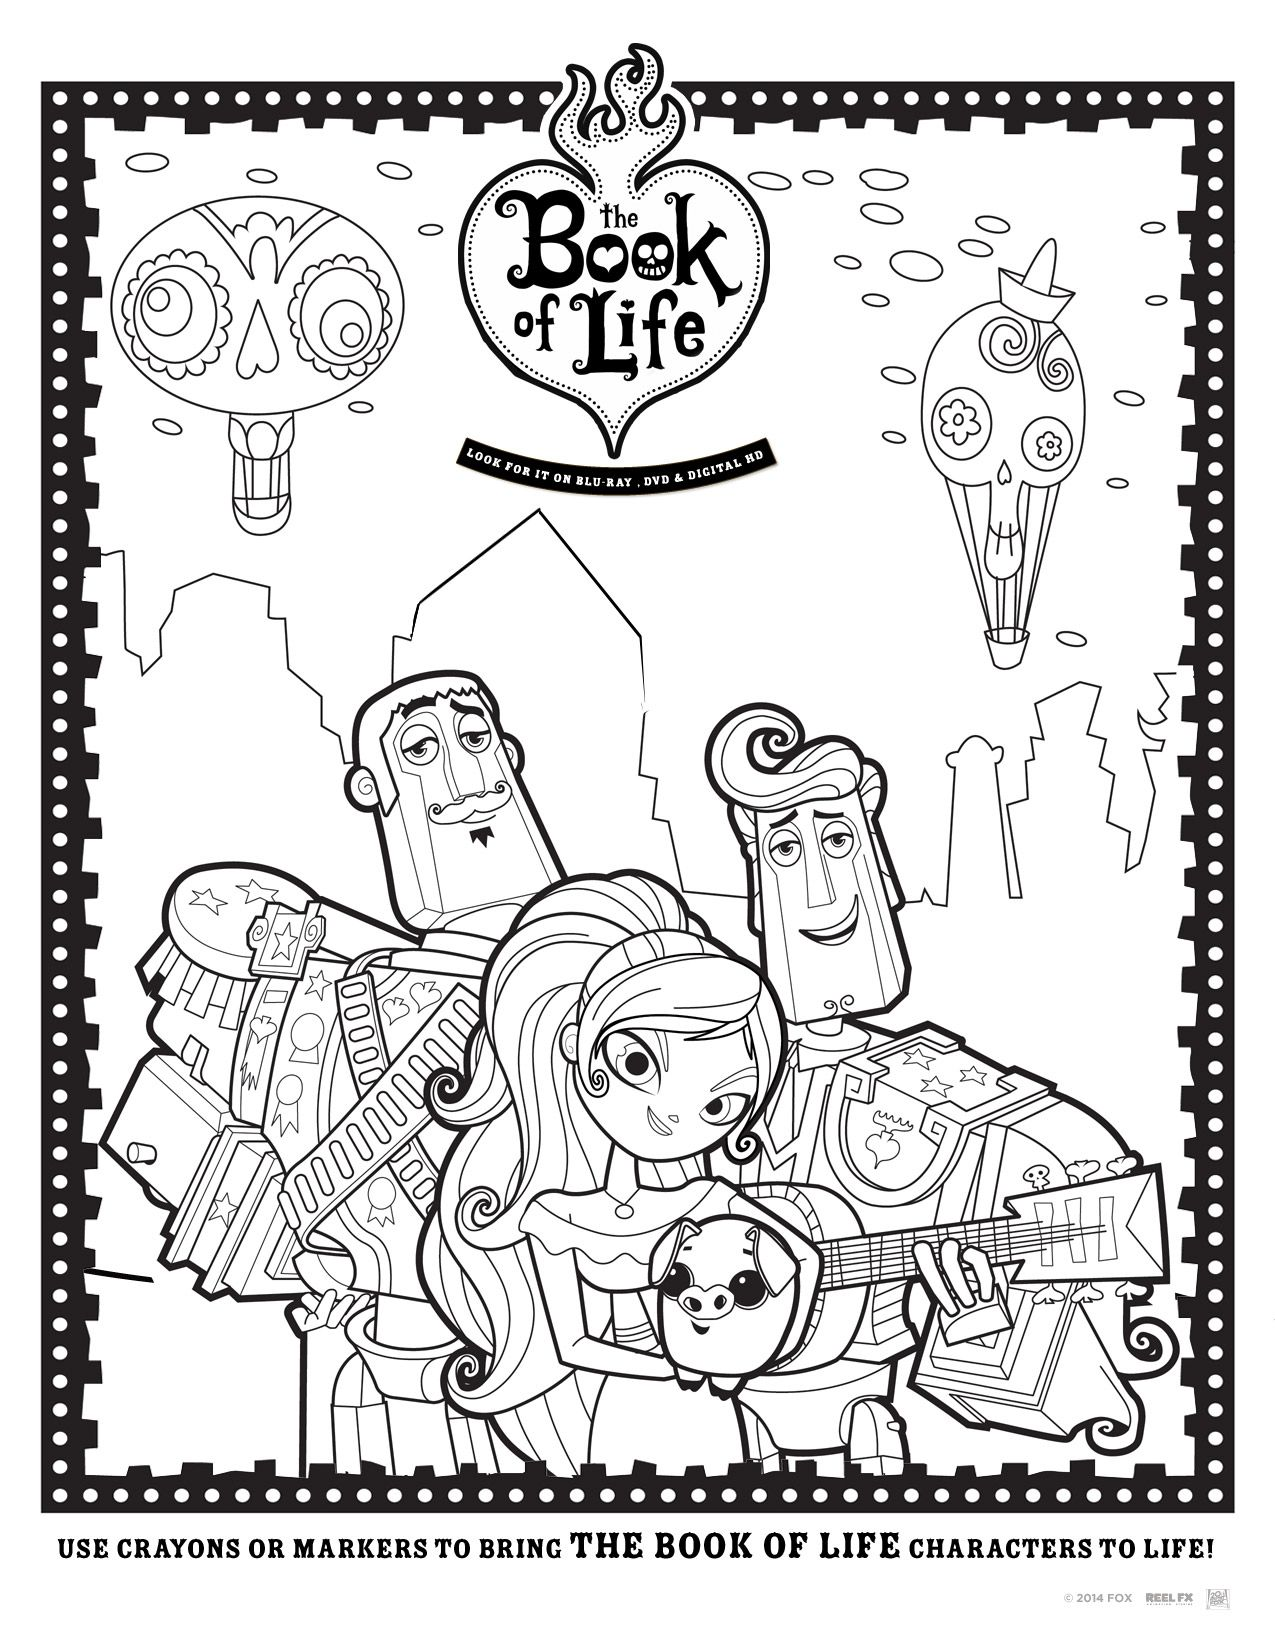 Coloring book pages pinterest - Manolo Maria Y Joaquin The Book Of Life The Free Coloring Pages